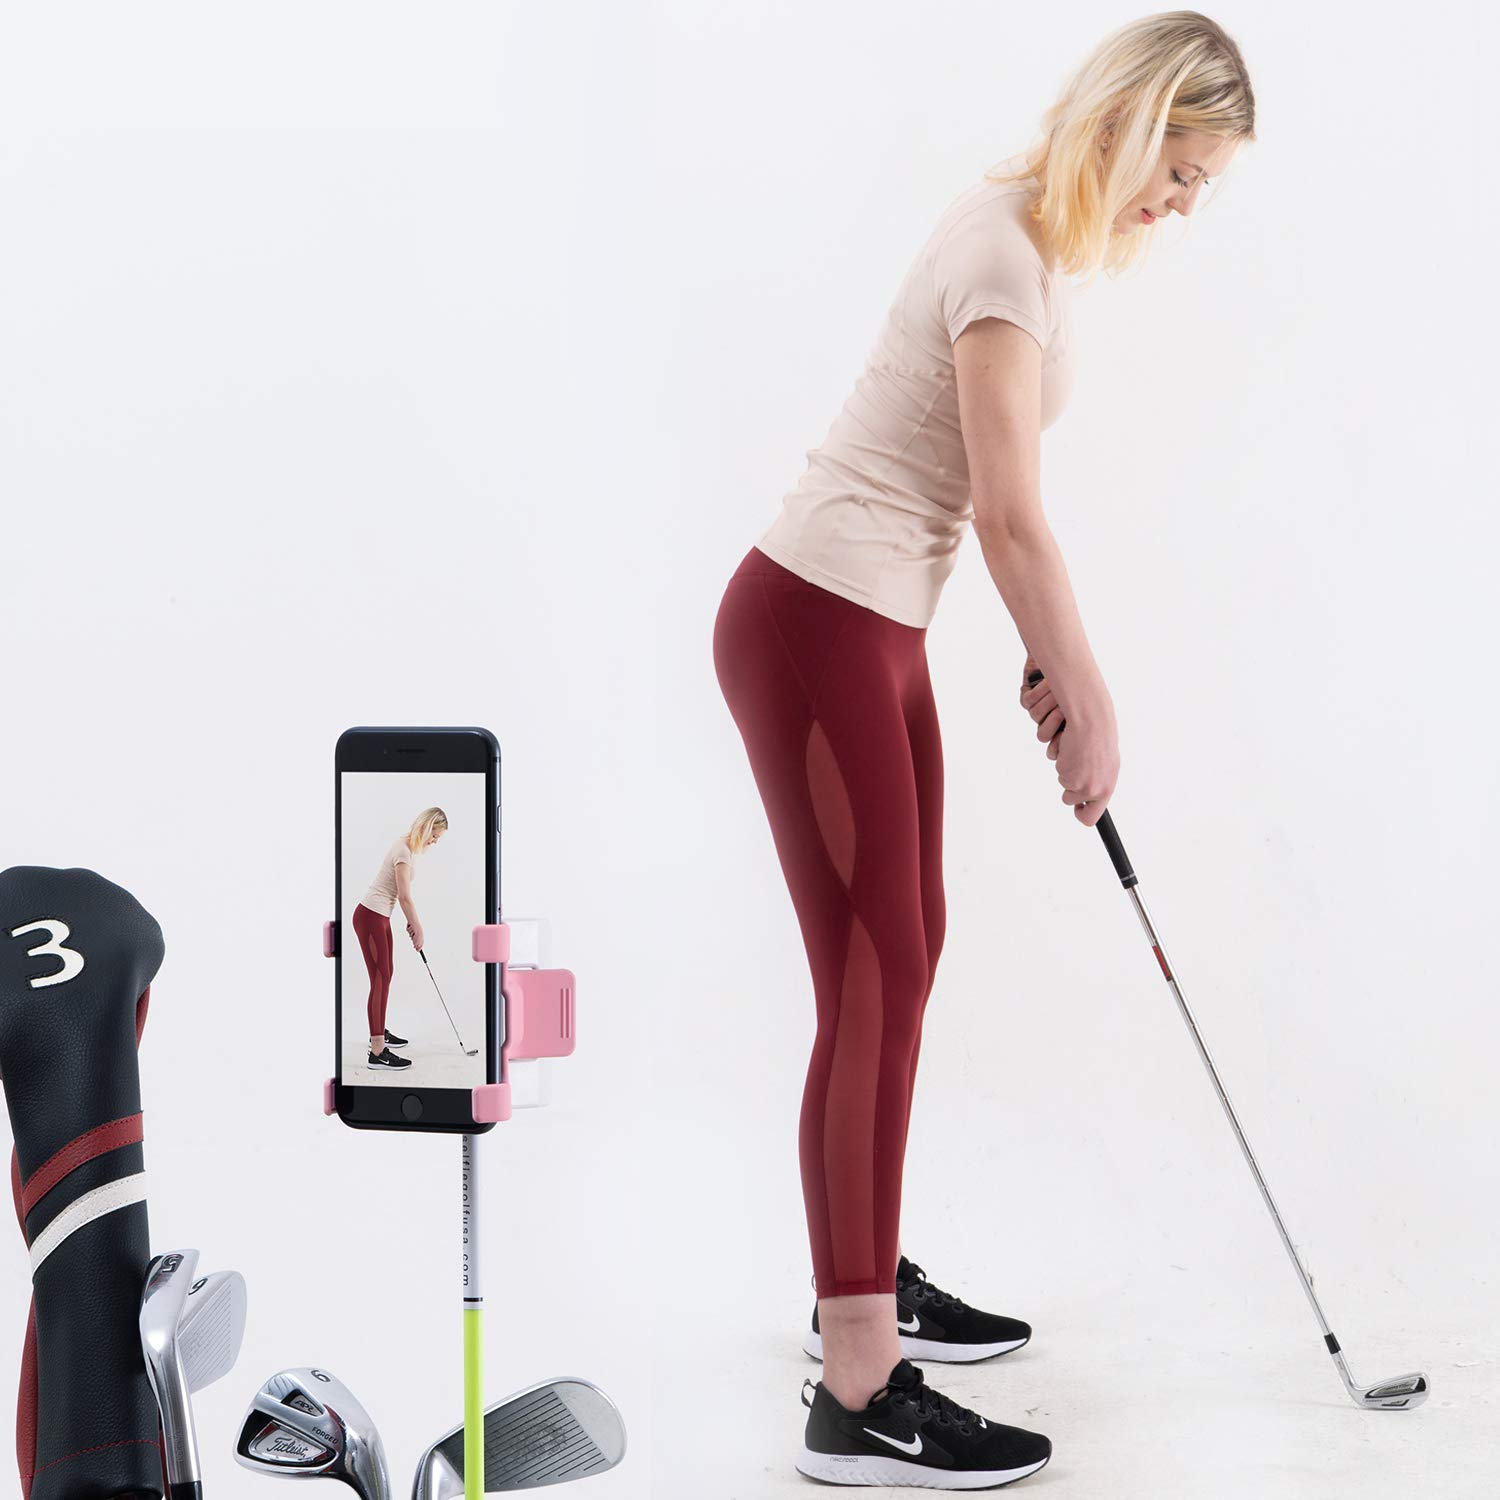 SelfieGolf Record Golf Swing - Cell Phone Clip Holder and Training Aid - Golf Accessories | Winner of The PGA Best Product | Works with Any Smart Phone, Quick Set Up (Pink/White)